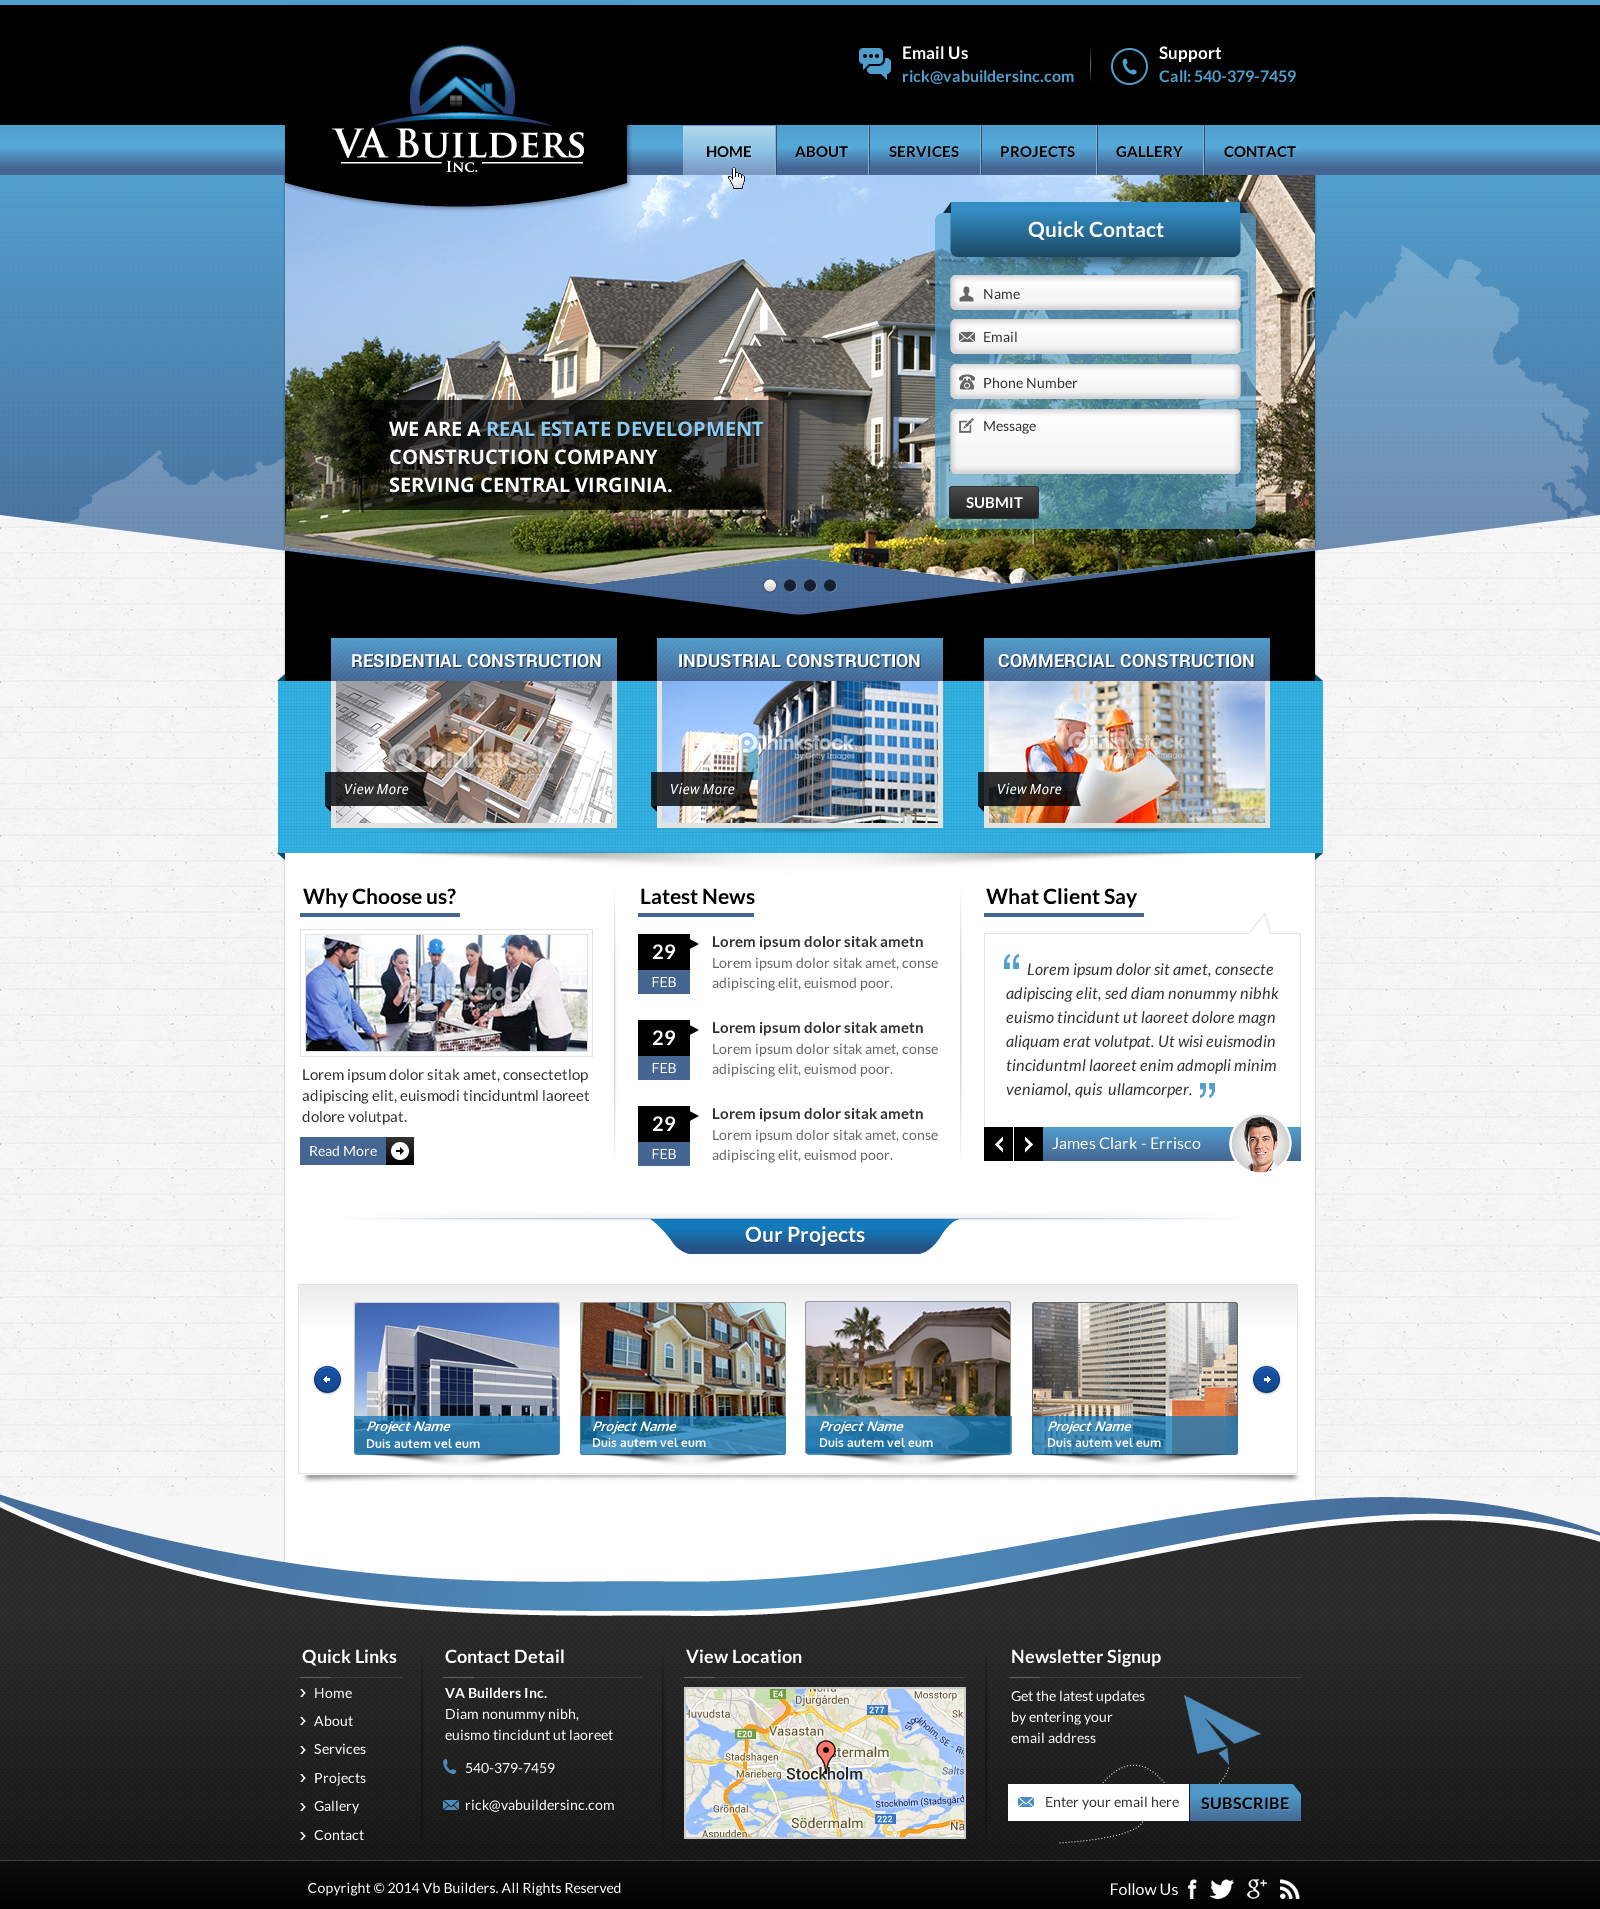 Complete Website Design VA Builders, Inc. - Construction